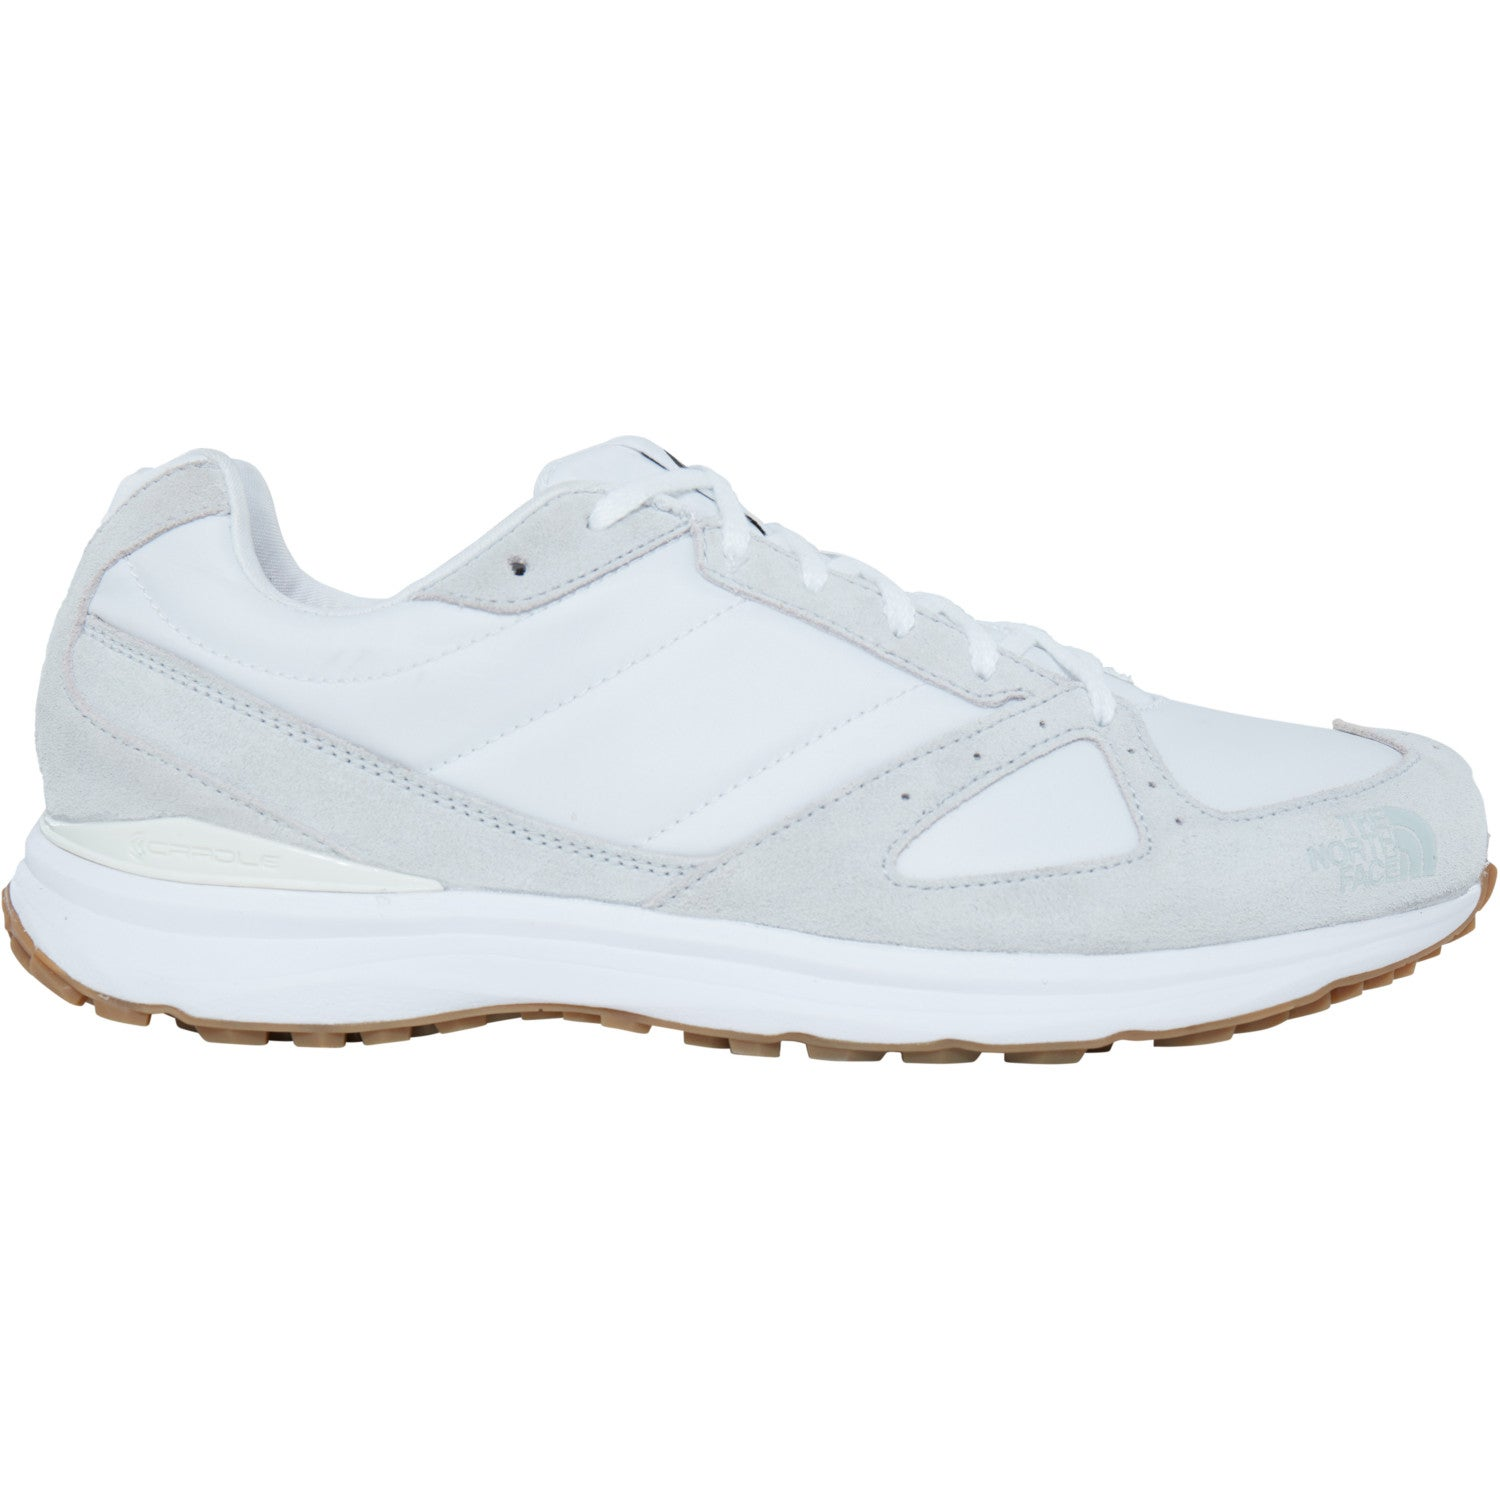 The North Face Traverse Tr Nylon Mens Footwear Shoe - Tnf White ... 4d7770d78c0b